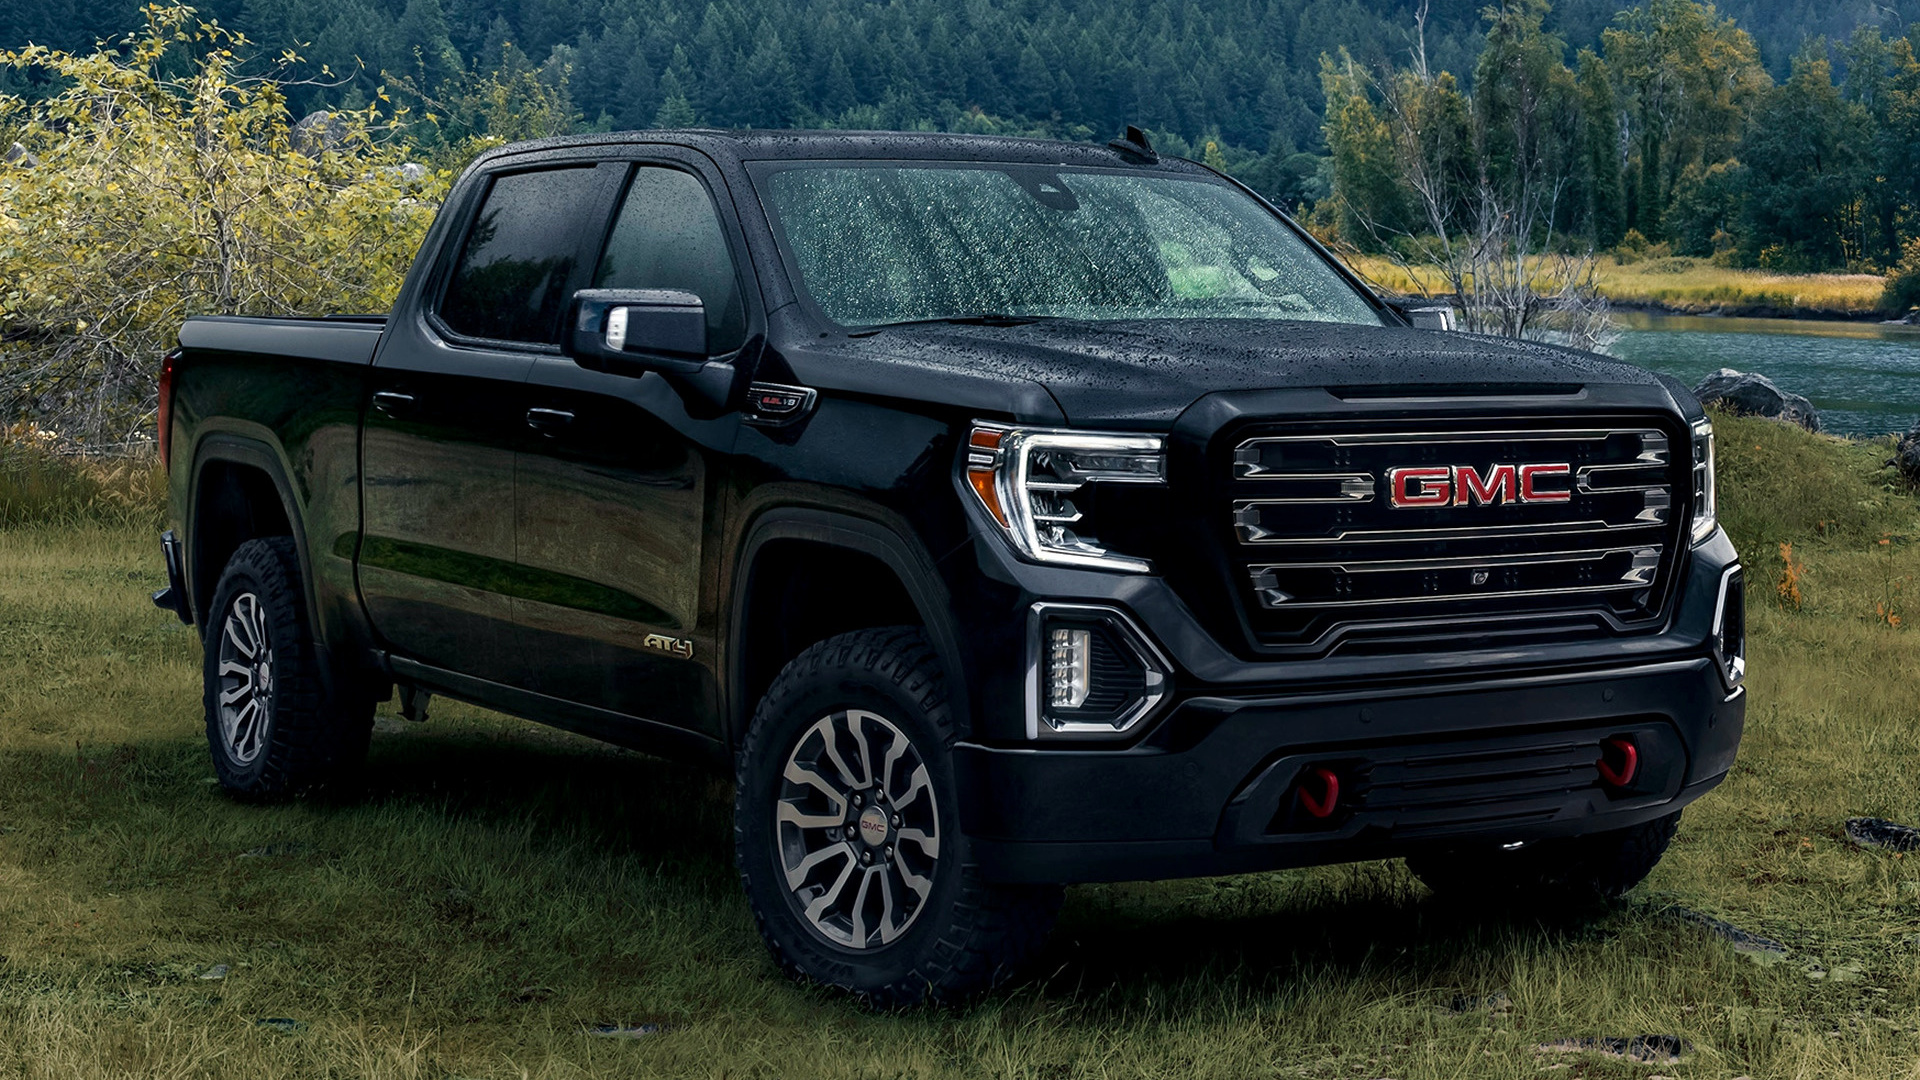 2019 Gmc Sierra At4 Crew Cab Wallpapers And Hd Images